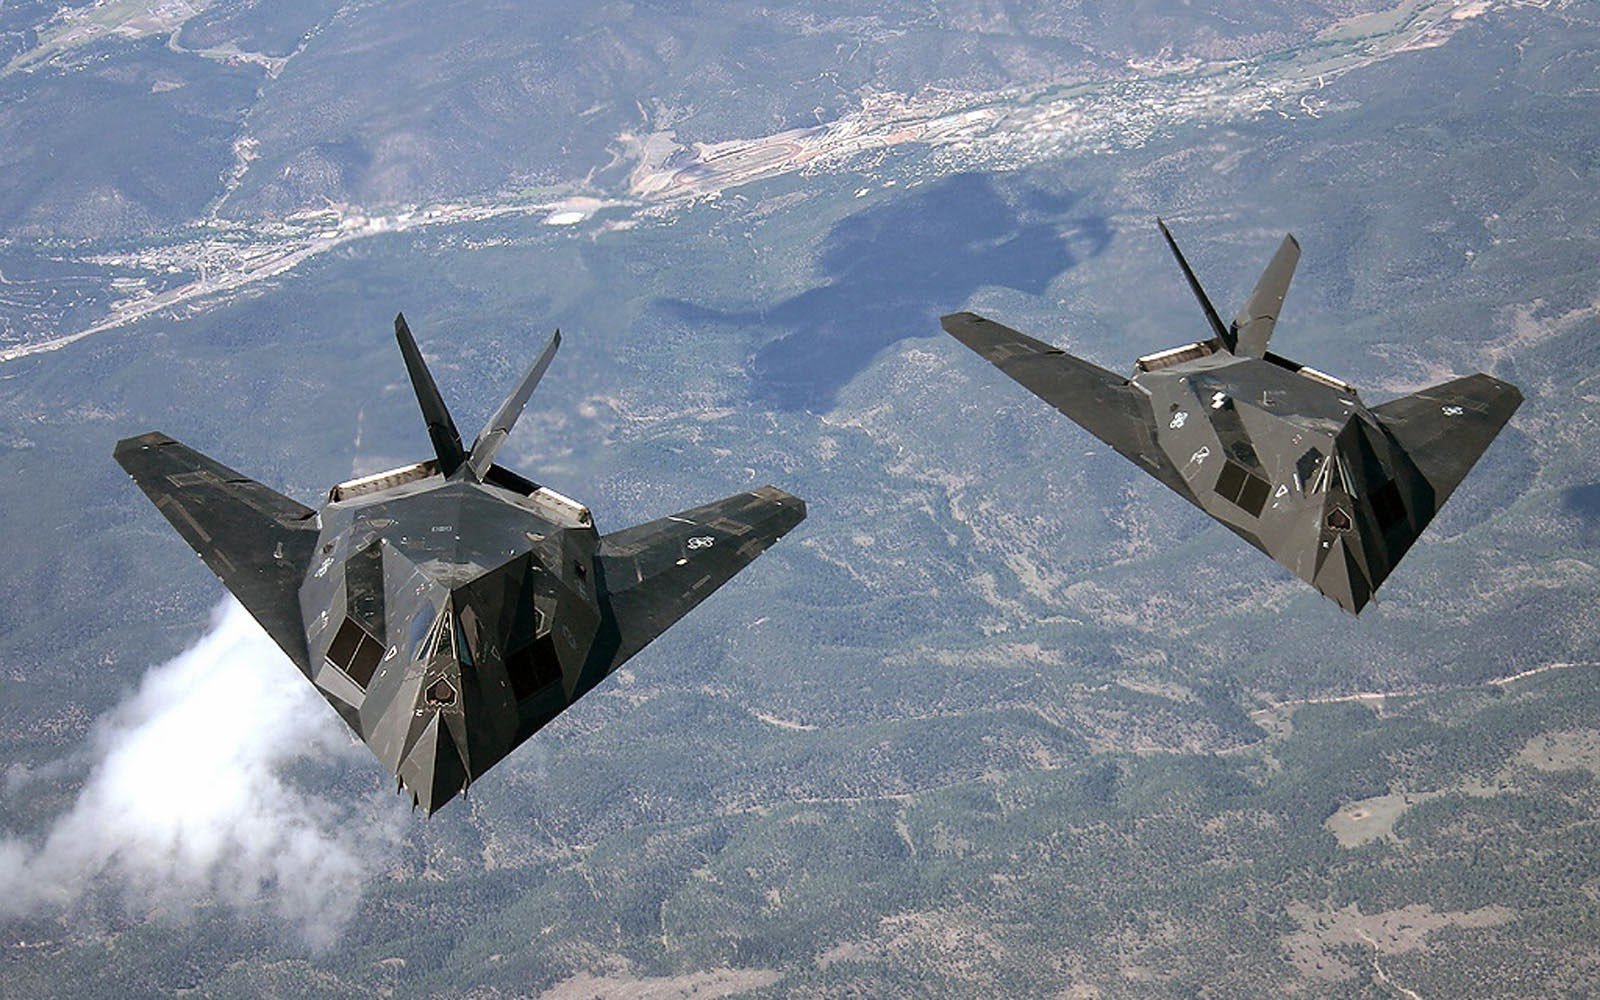 wallpapers lockheed f117 nighthawk aircraft wallpapers